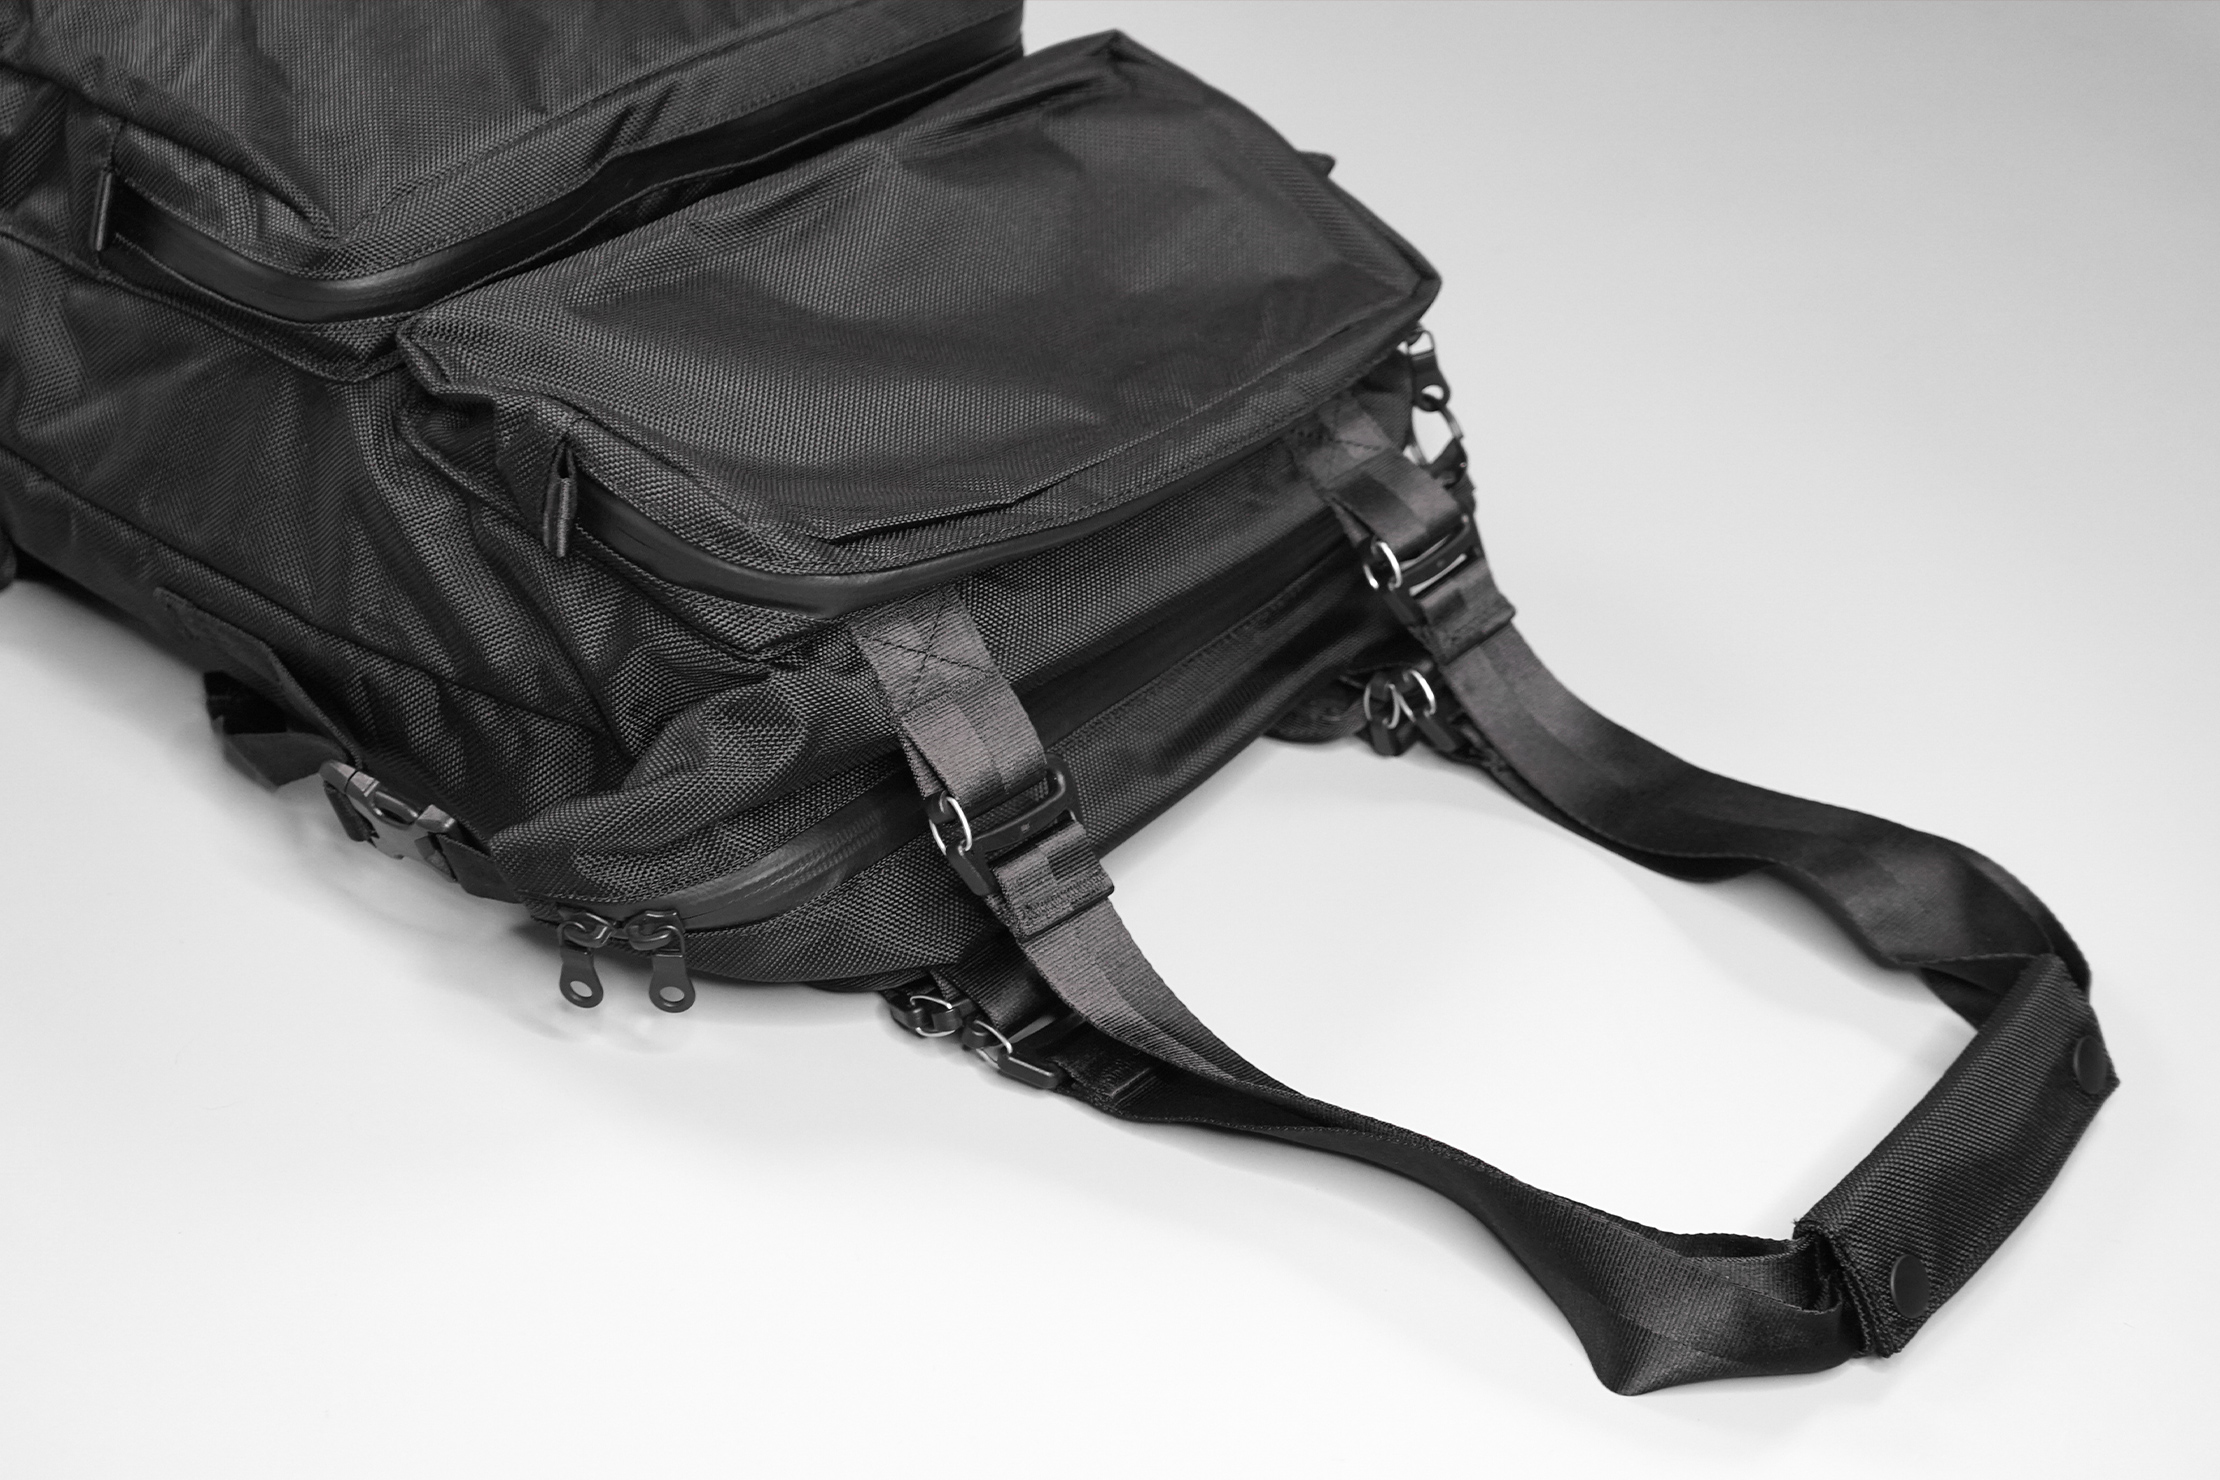 Crafted Goods SIMPLON 18L Handles